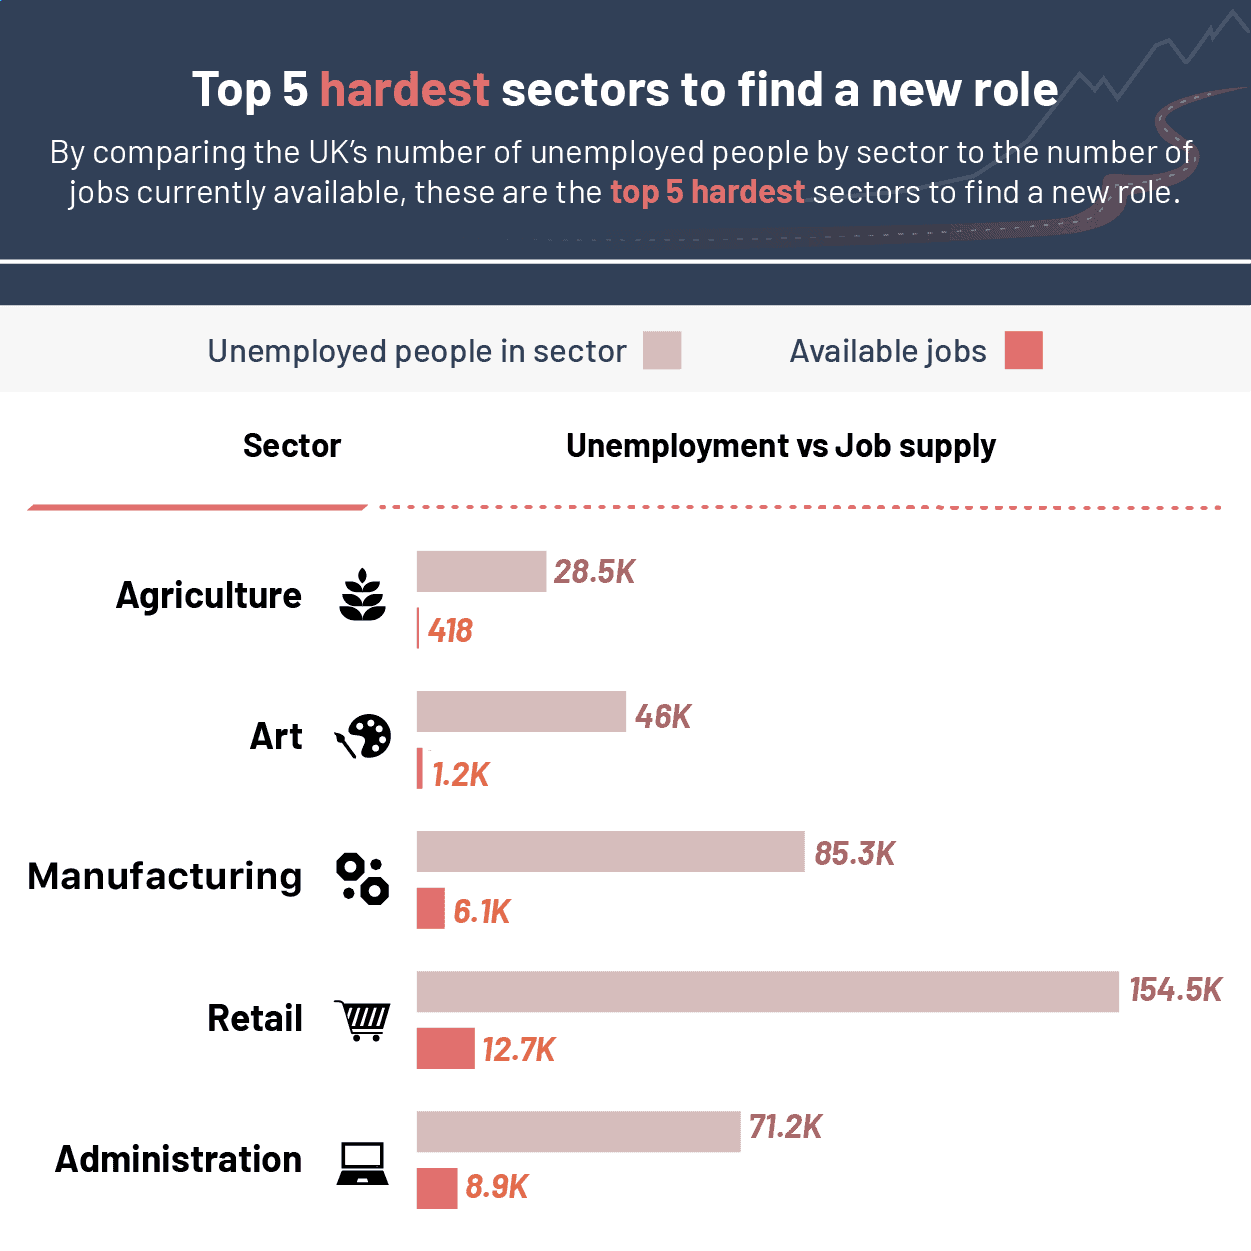 5 hardest sectors to find a new role